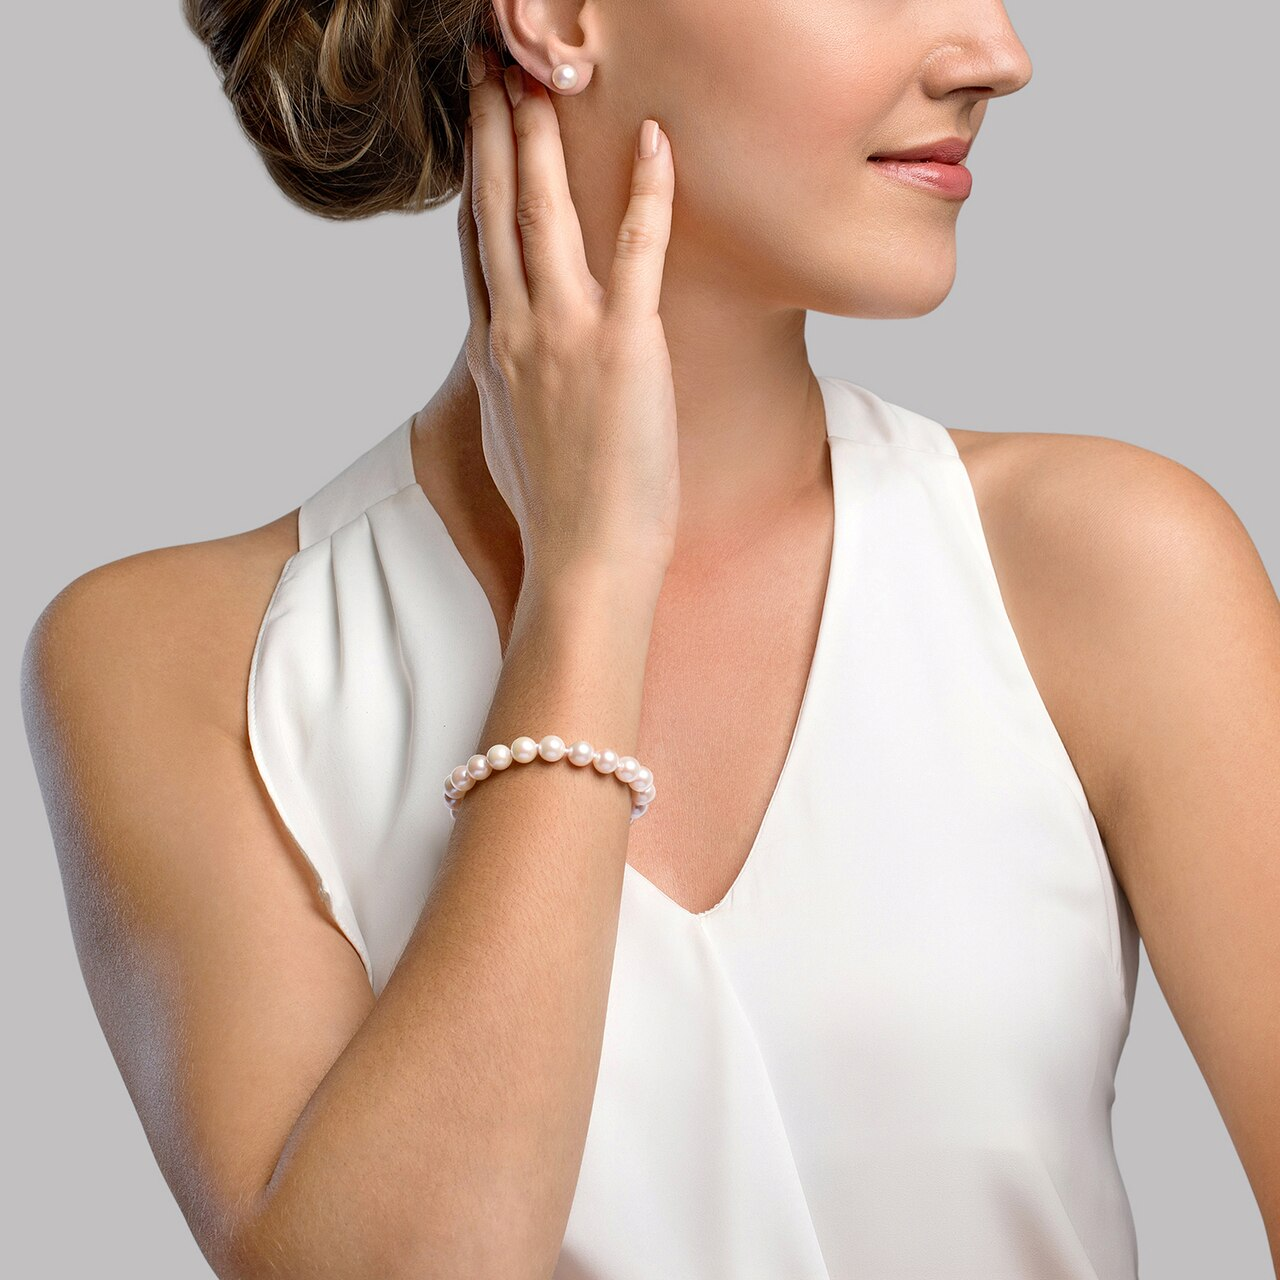 This elegant bracelet features 8.5-9.0mm Japanese Akoya pearls, handpicked for their luminous luster